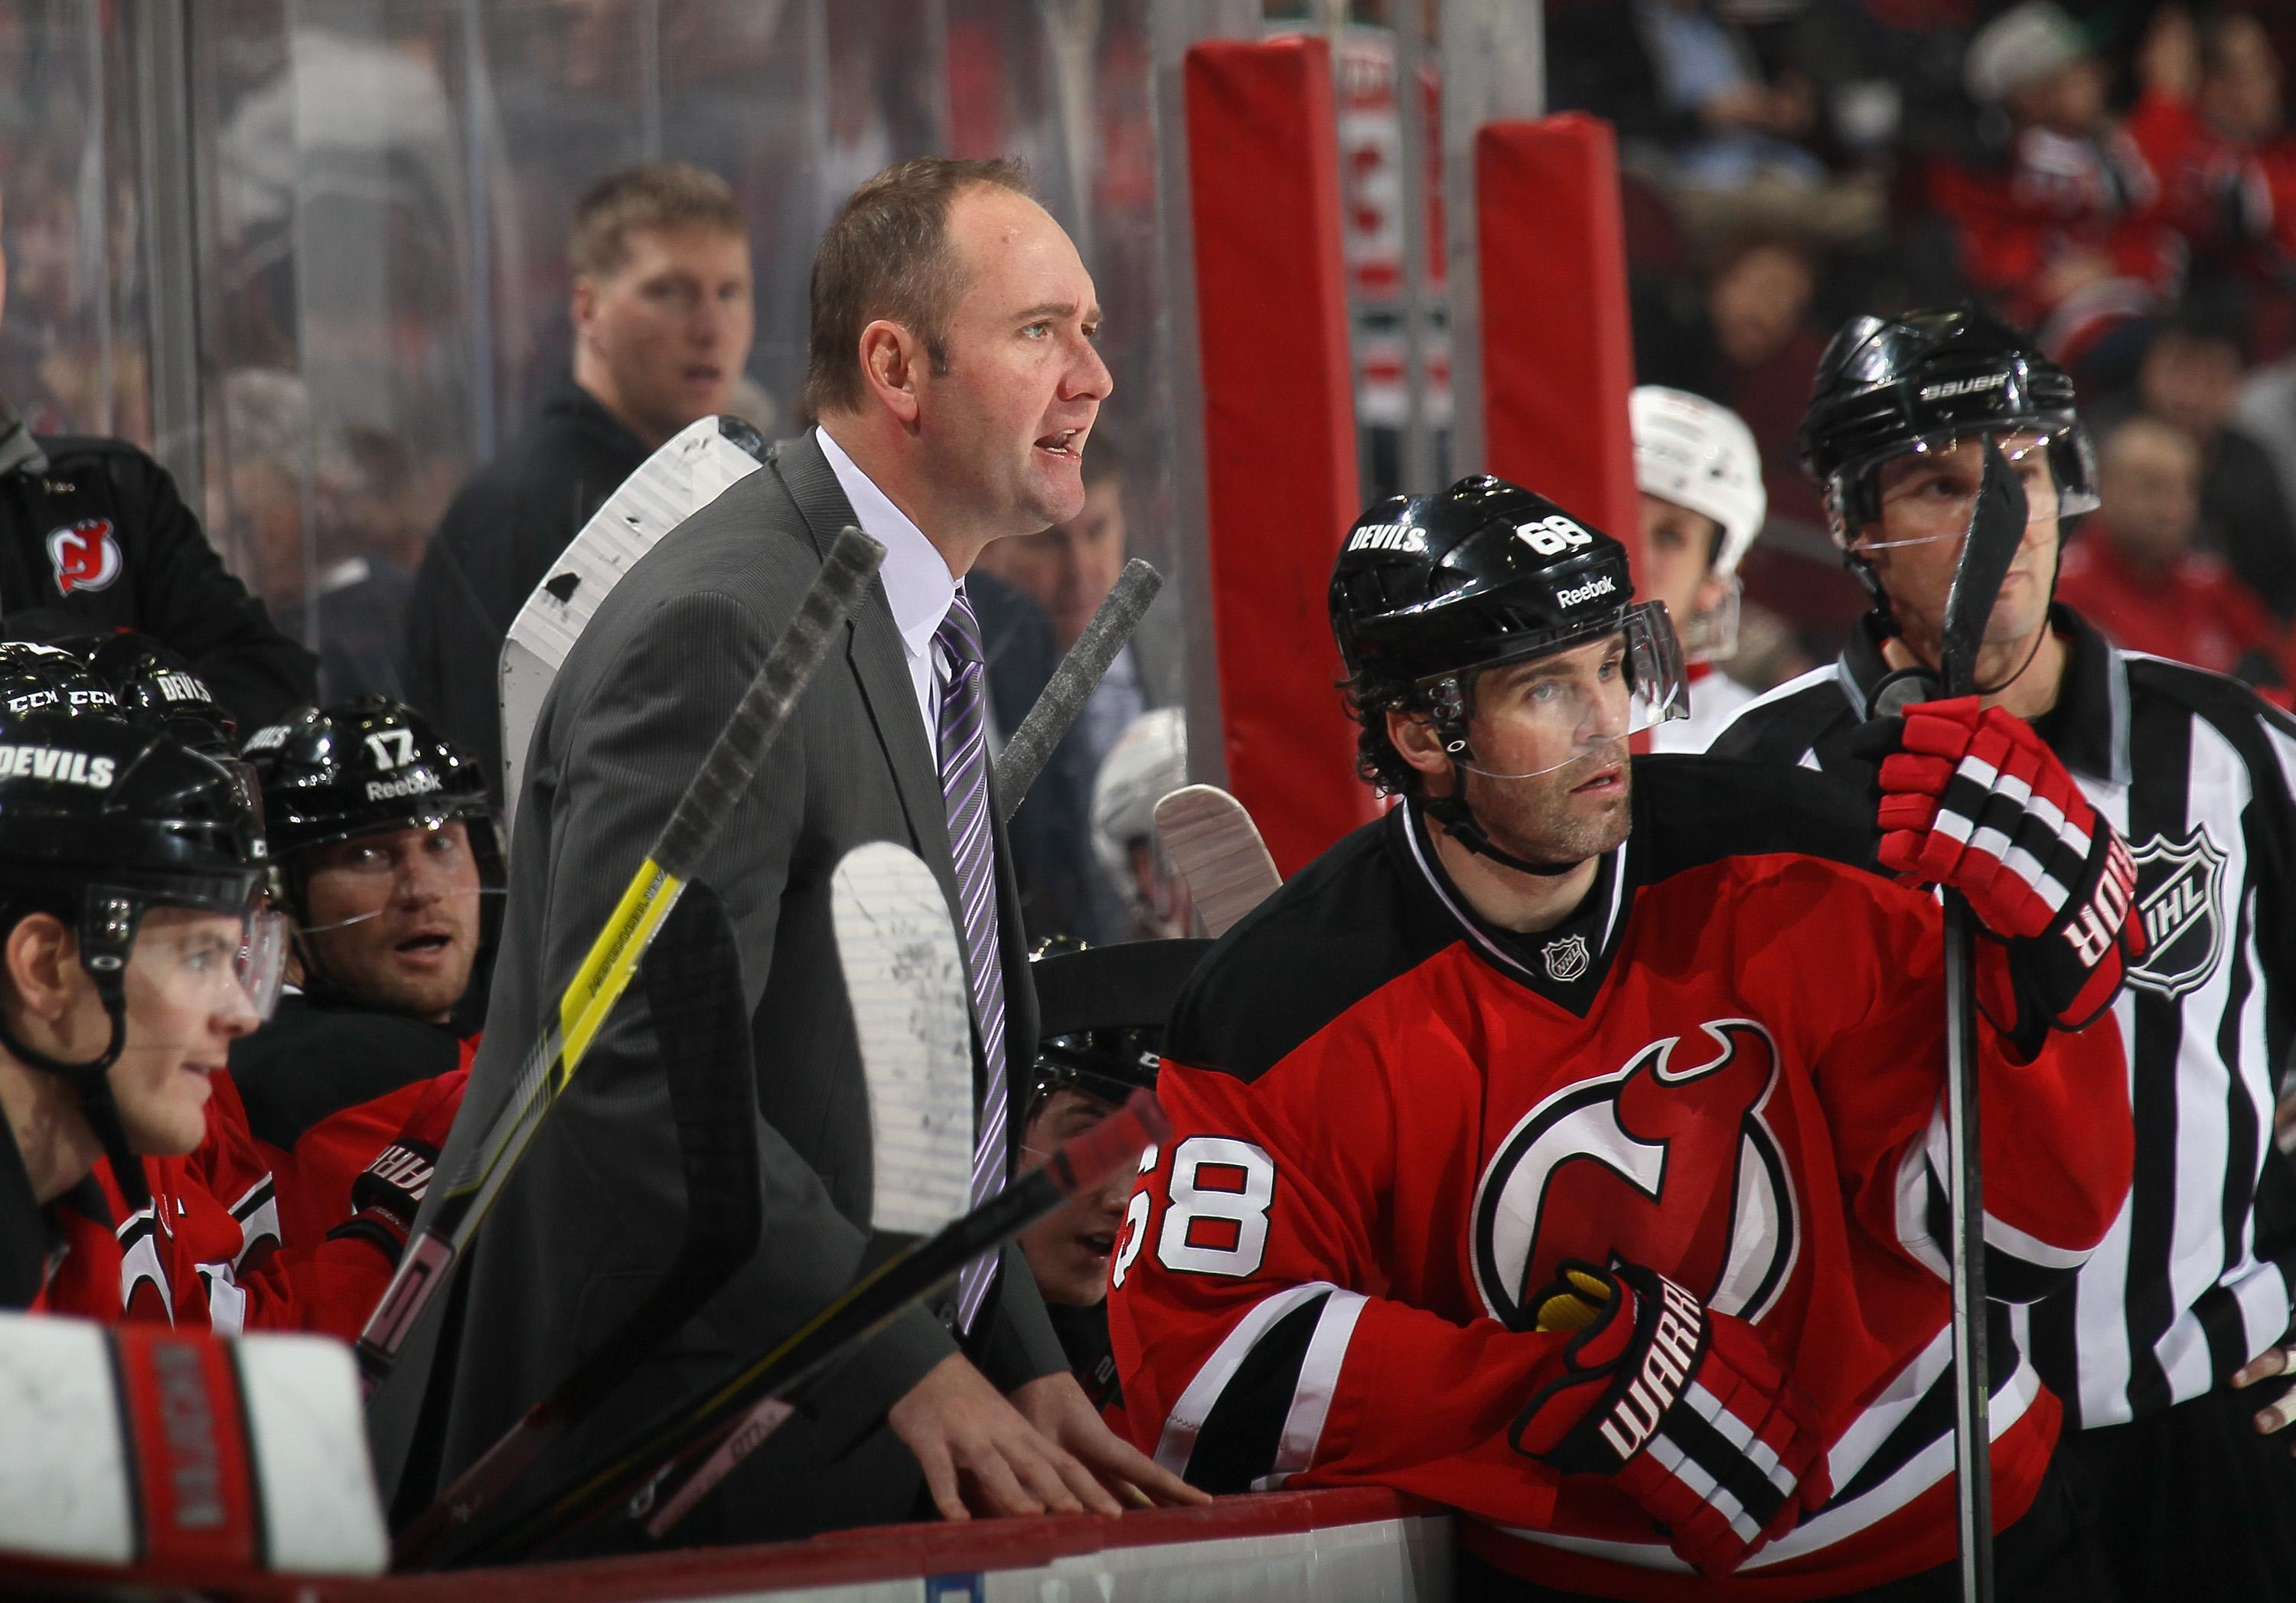 Devils dump DeBoer as coach after weak start